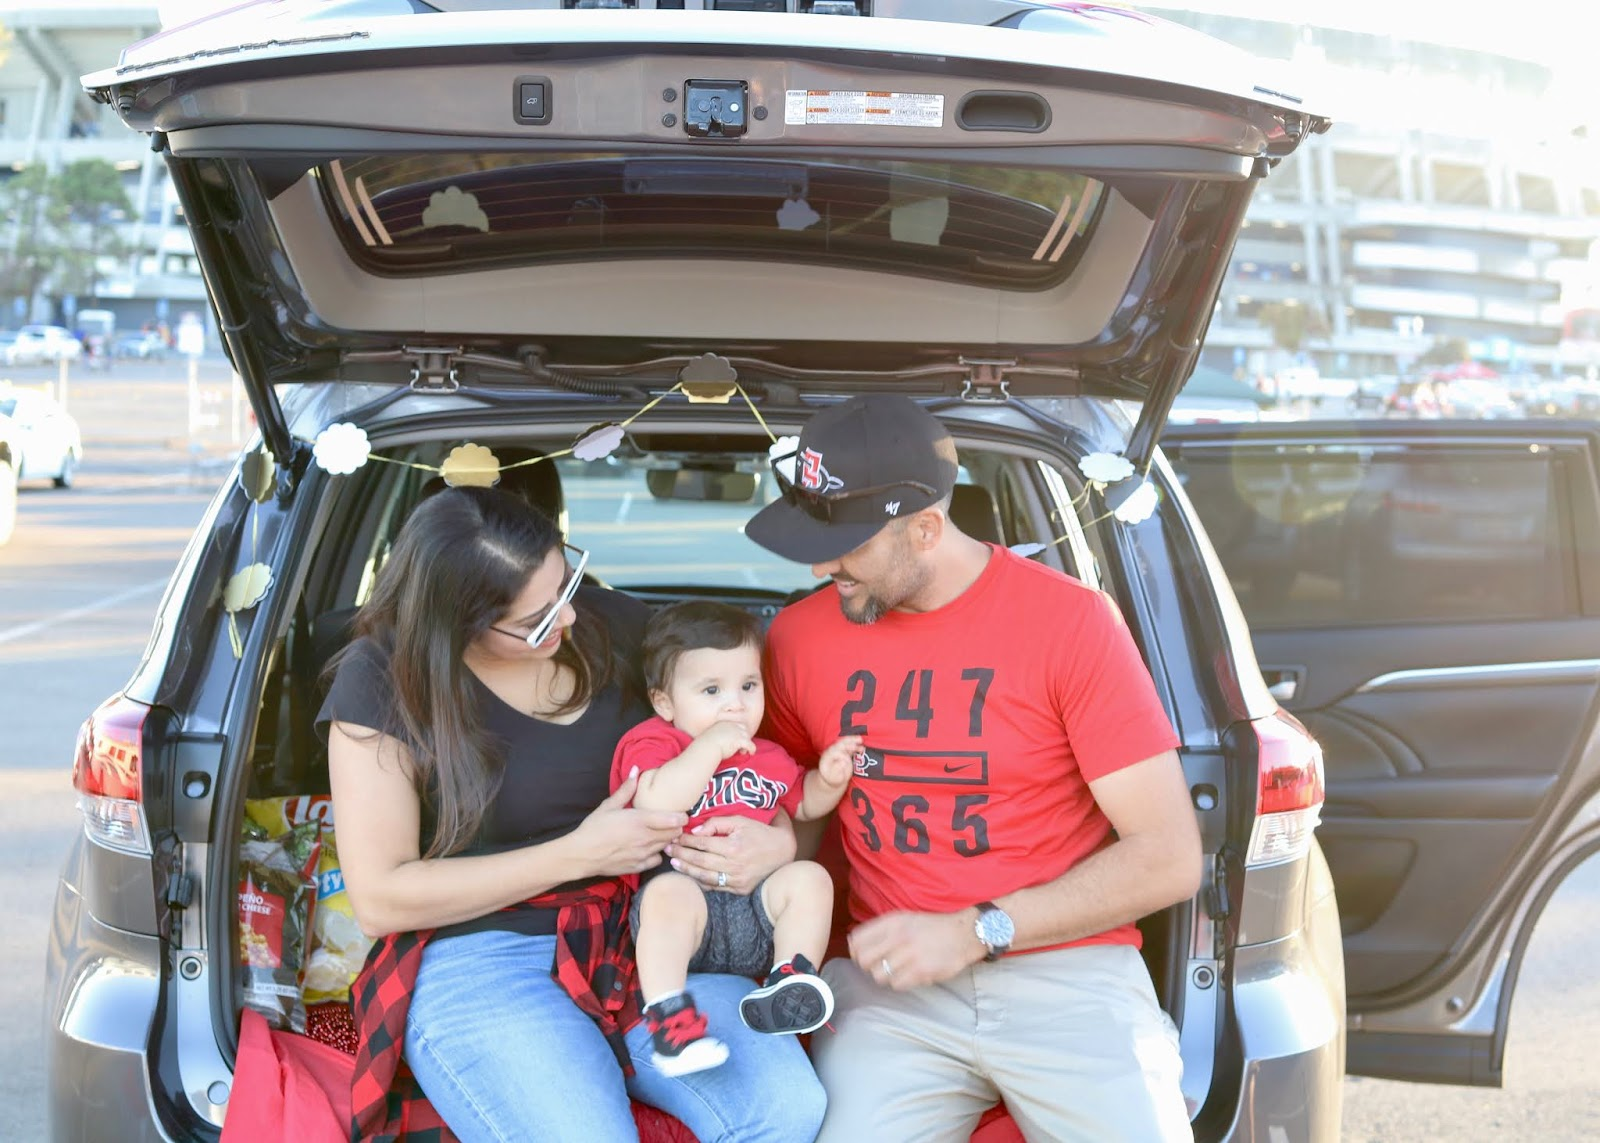 tailgating with my little family, San Diego state university homecoming game 2018, San Diego Toyota tailgate 2018